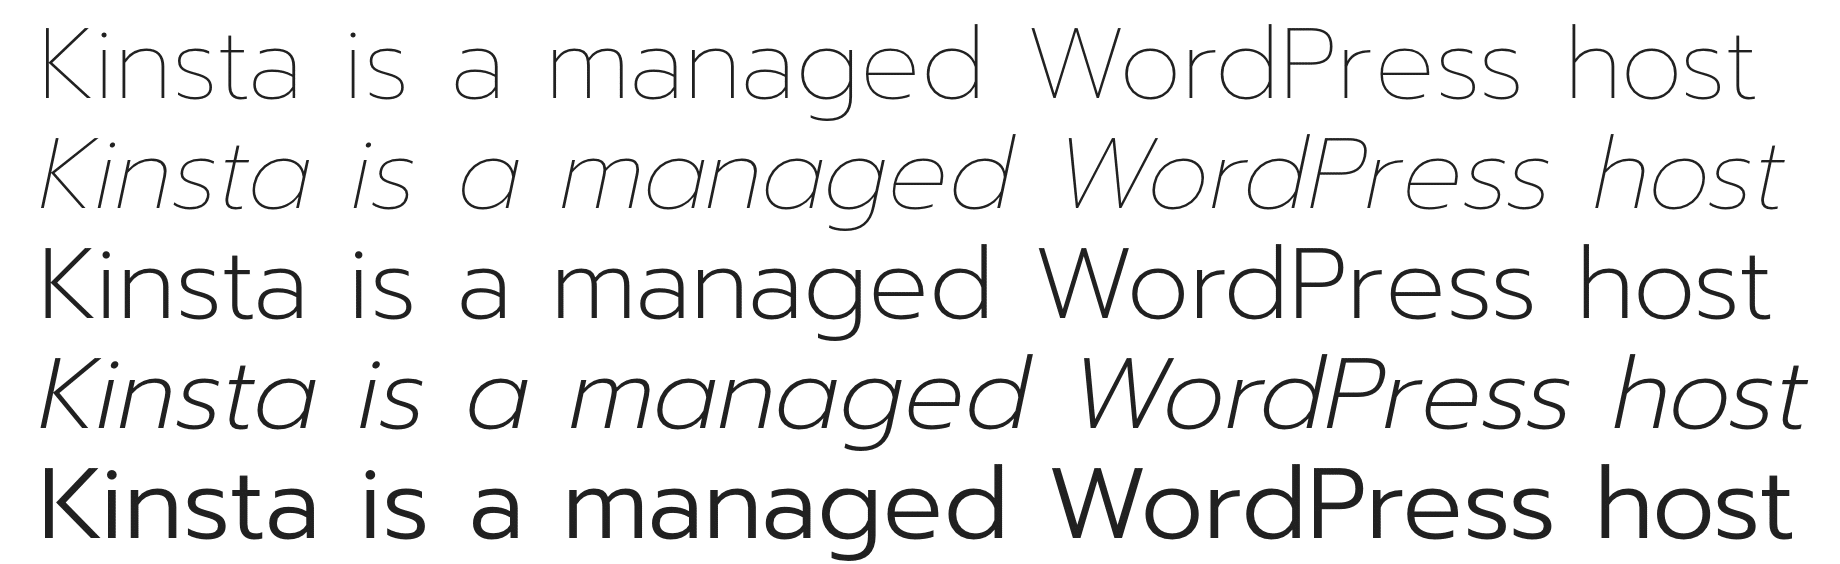 15 Best Google Fonts by the Numbers in 2019 (Tips on Usage)